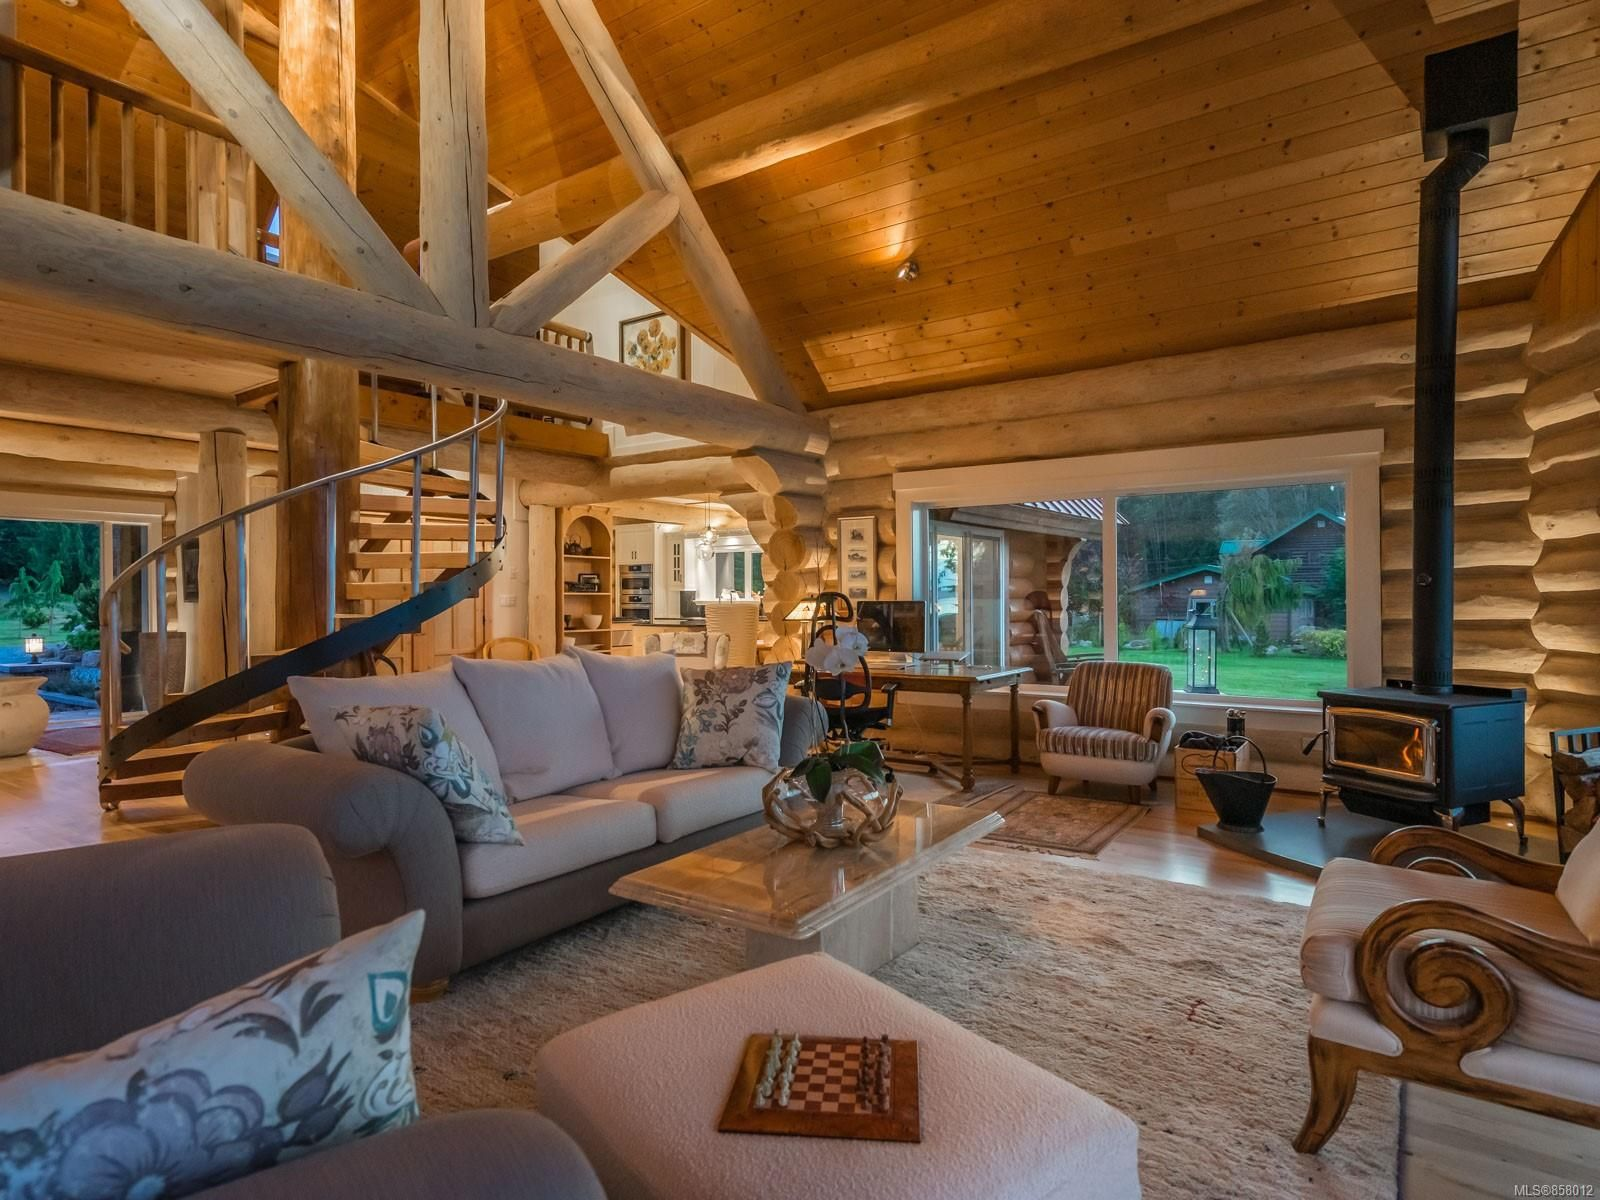 Photo 11: Photos: 6030 MINE Rd in : NI Port McNeill House for sale (North Island)  : MLS®# 858012